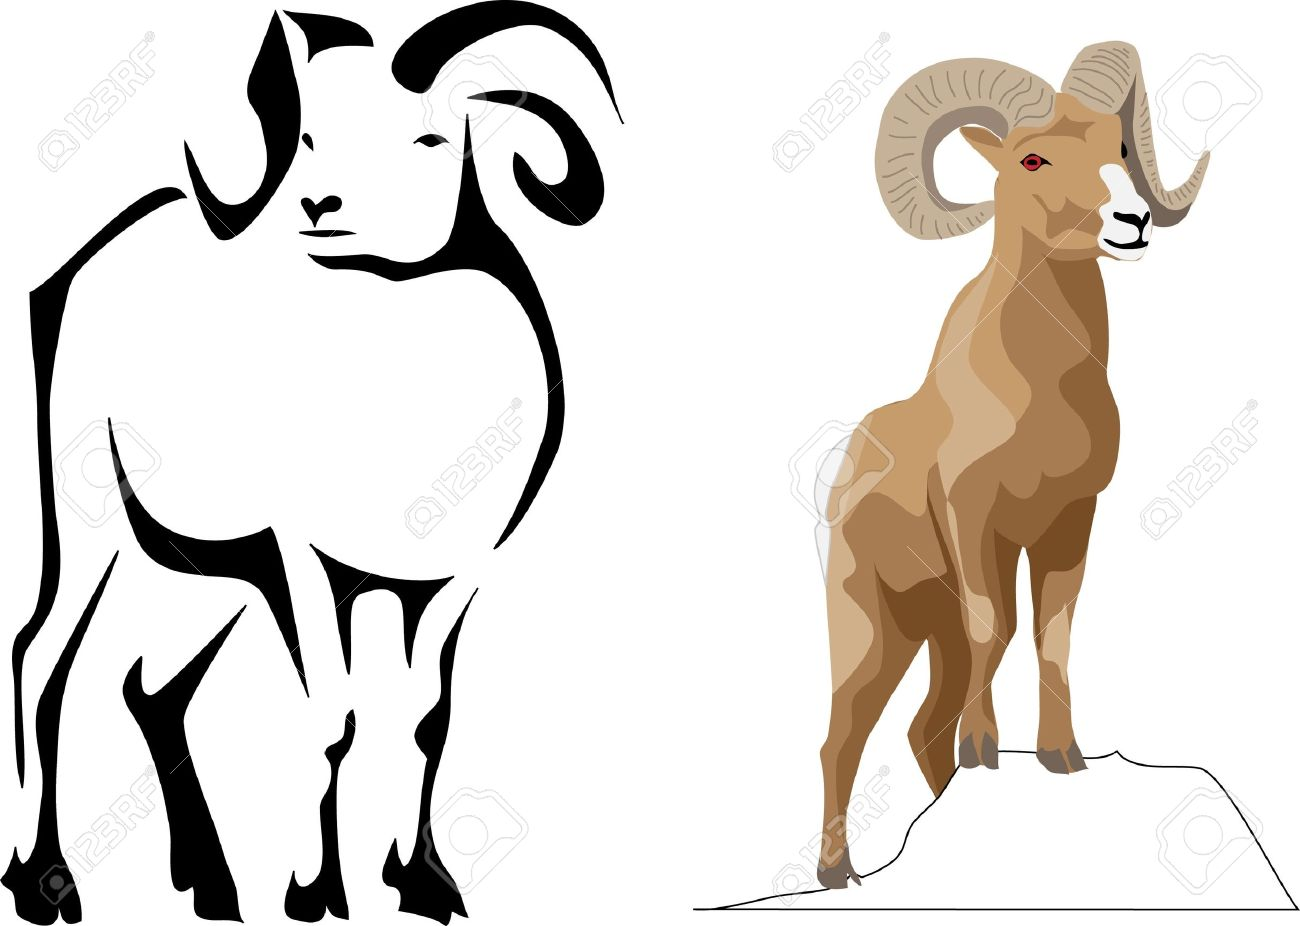 Bighorn Sheep clipart #8, Download drawings